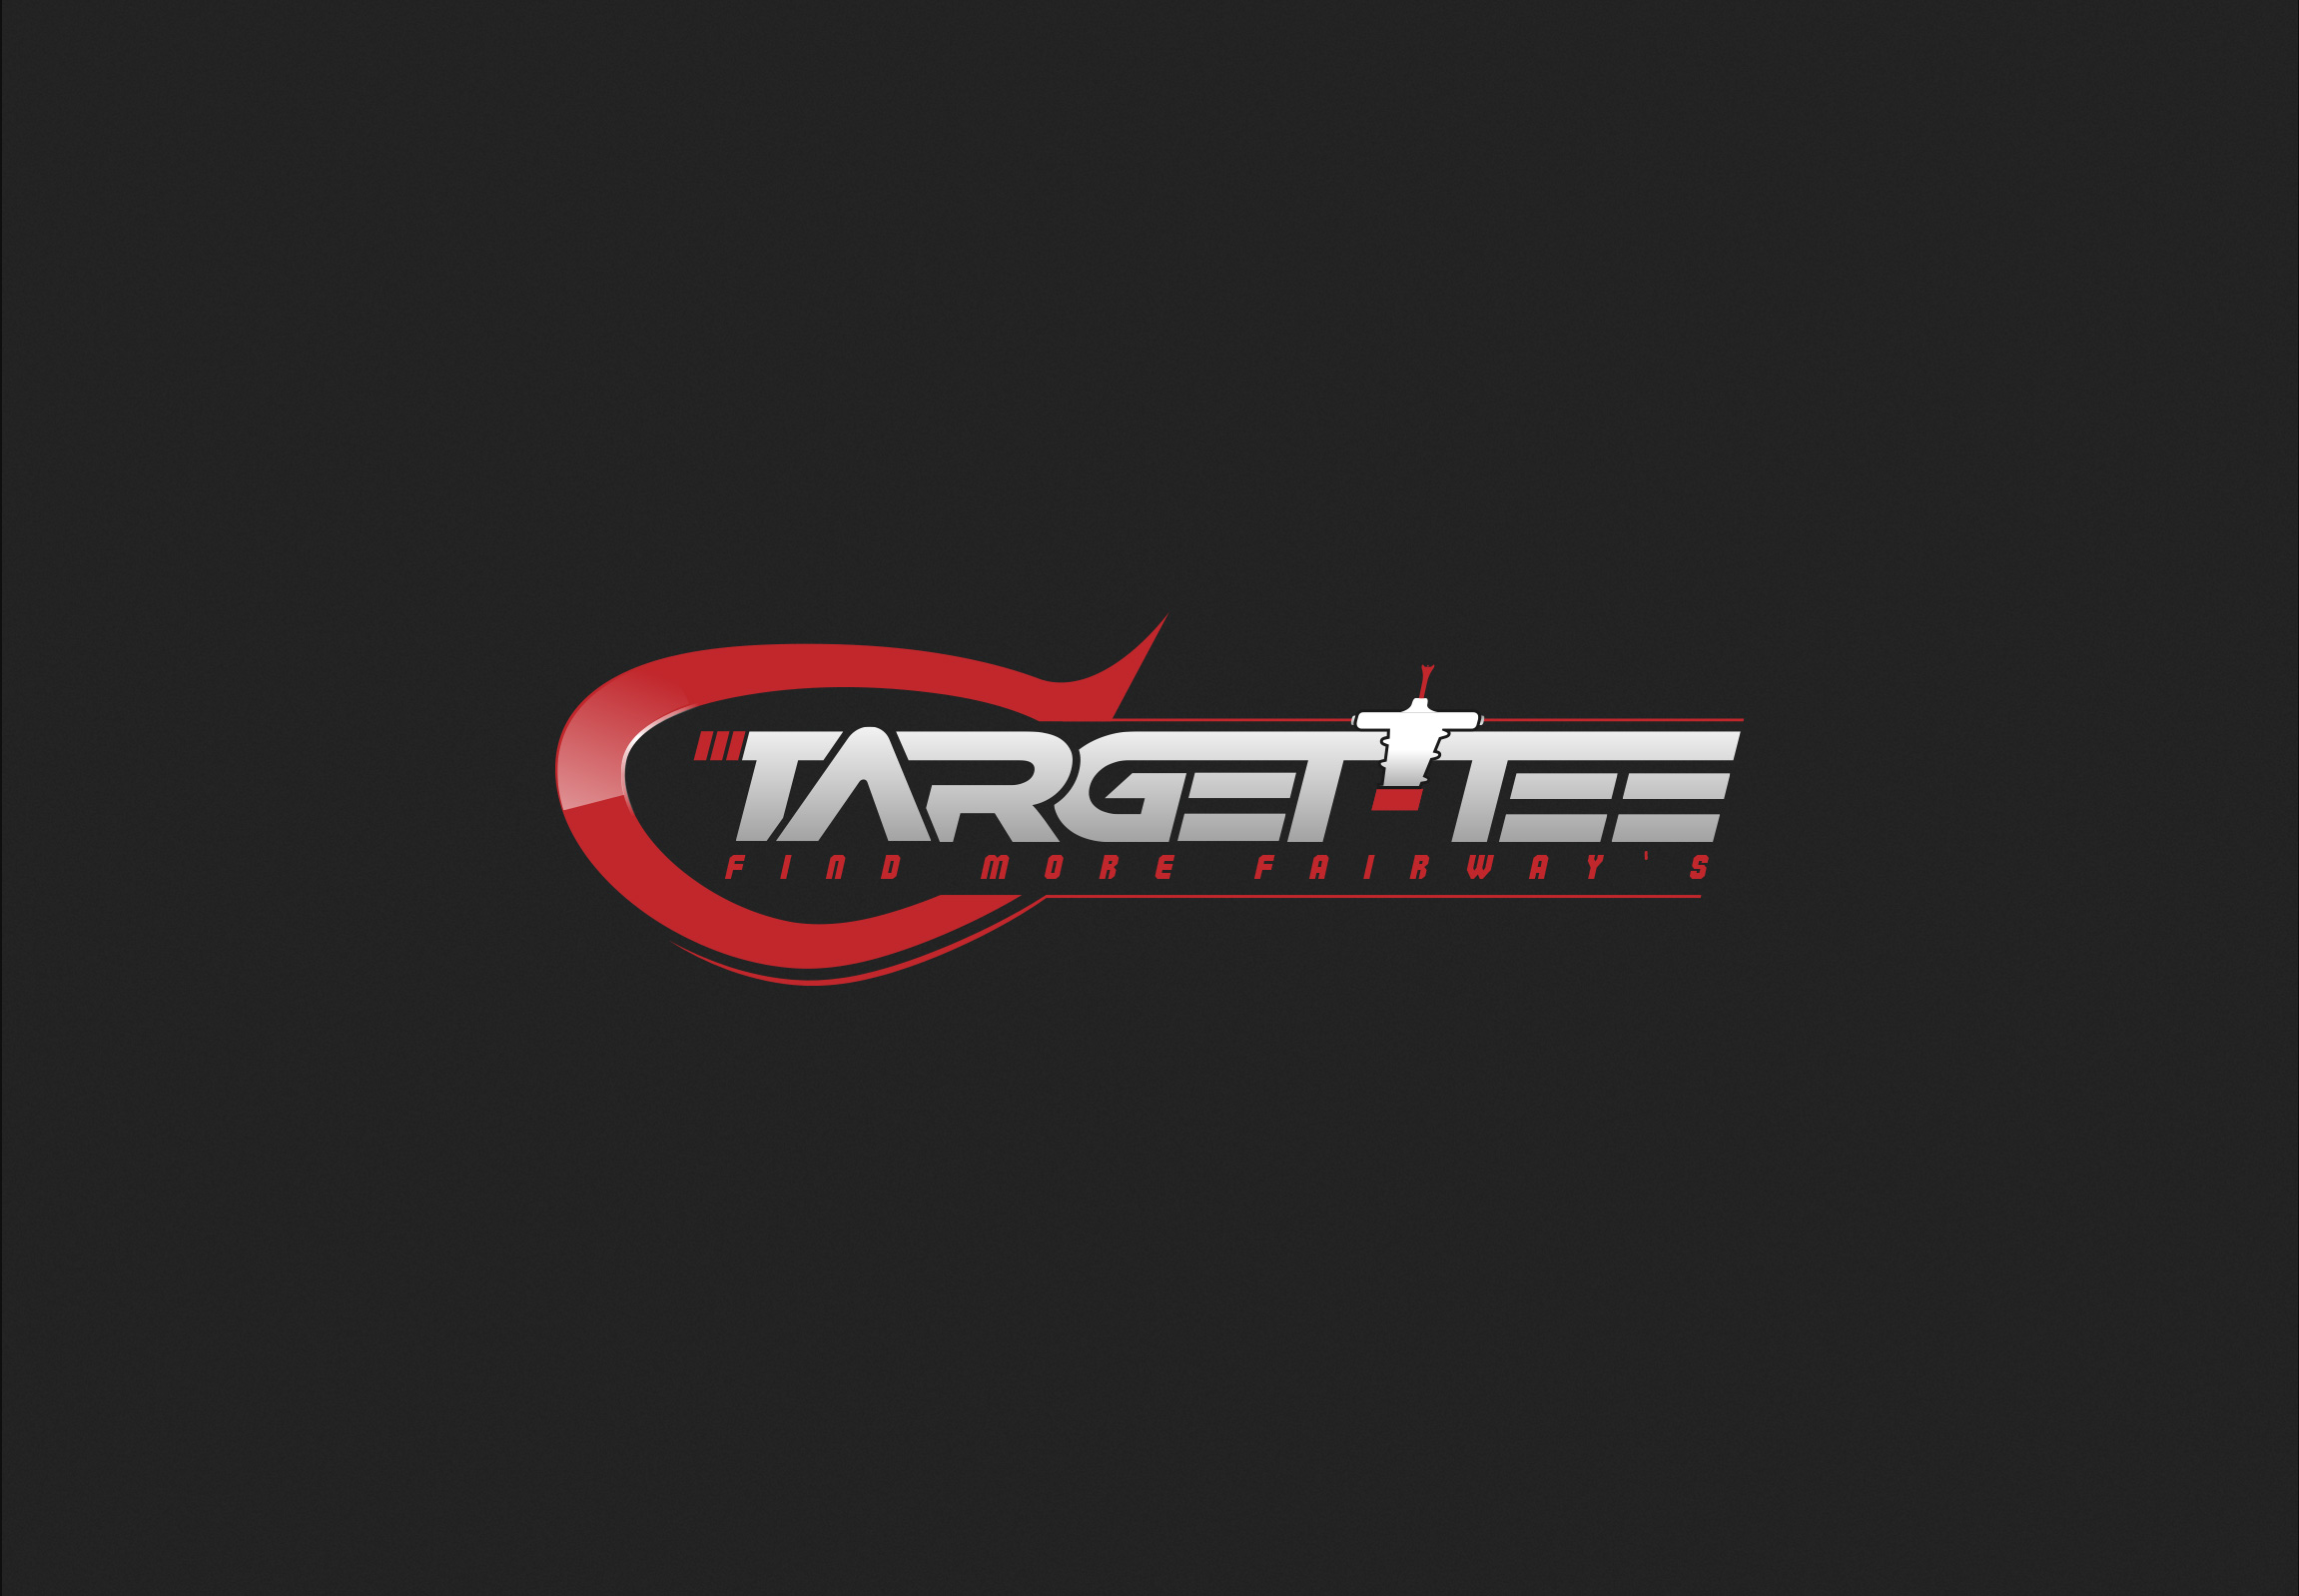 Logo Design by olii - Entry No. 134 in the Logo Design Contest Imaginative Logo Design for TARGET-TEE.